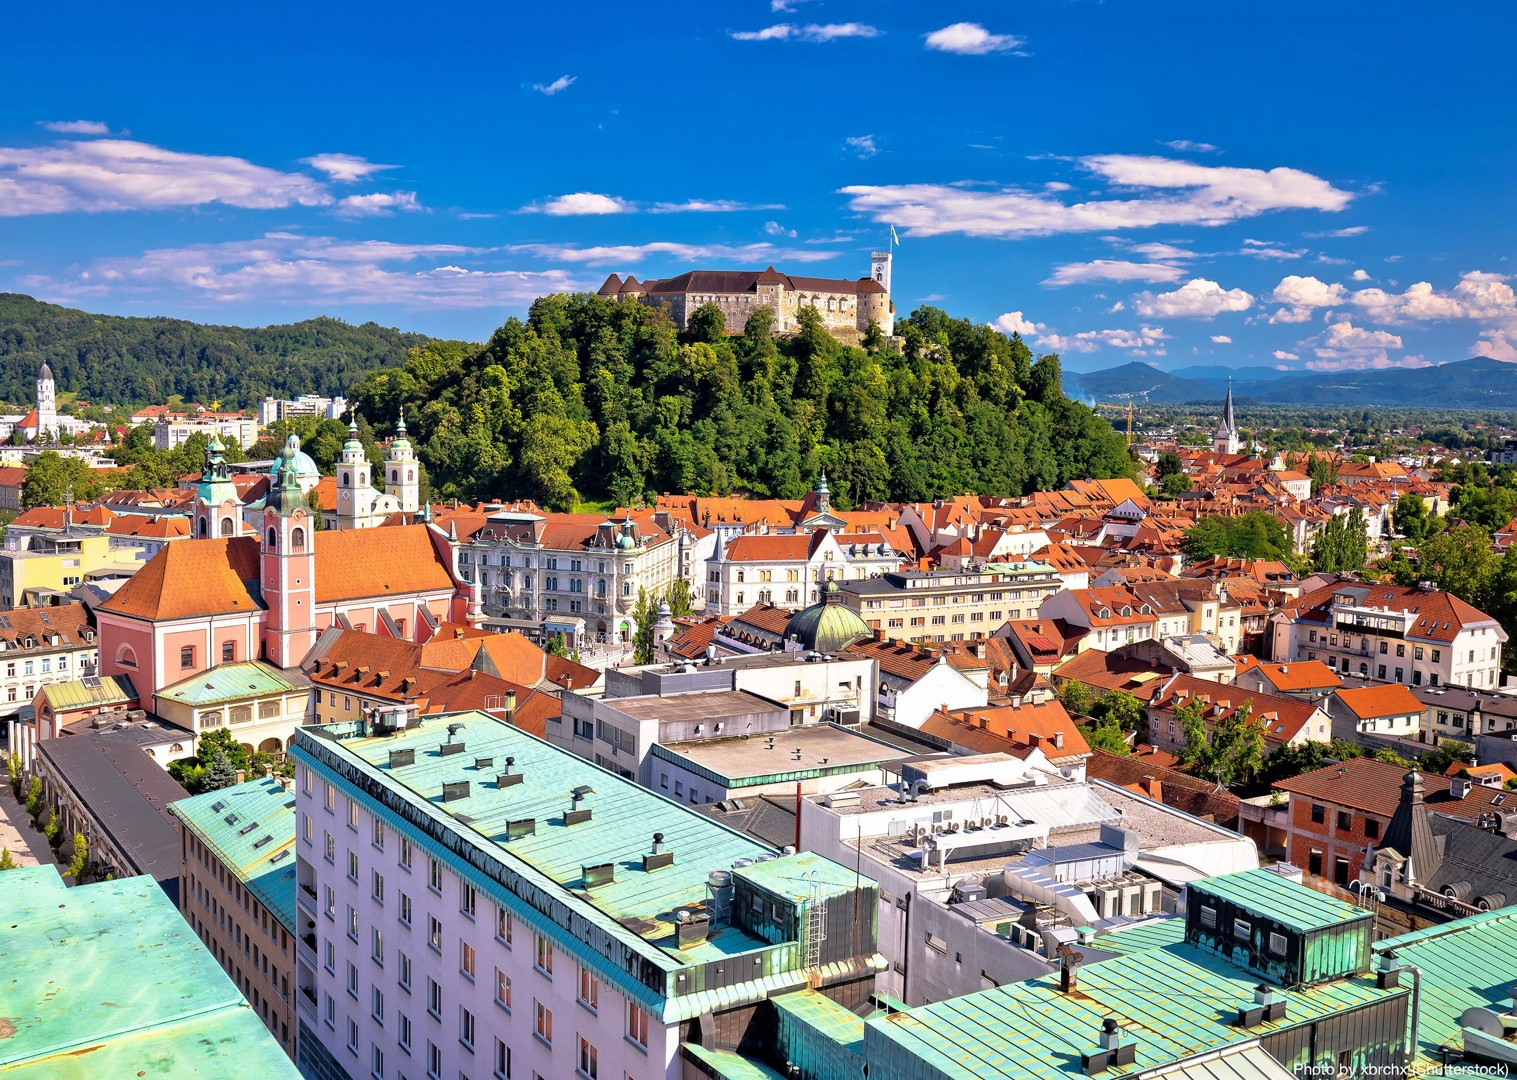 ljubljana-self-guided-leisure-cycling-holiday-slovenia-capital-to-coast.jpg - Slovenia - Capital to Coast - Self-Guided Leisure Cycling Holiday - Leisure Cycling